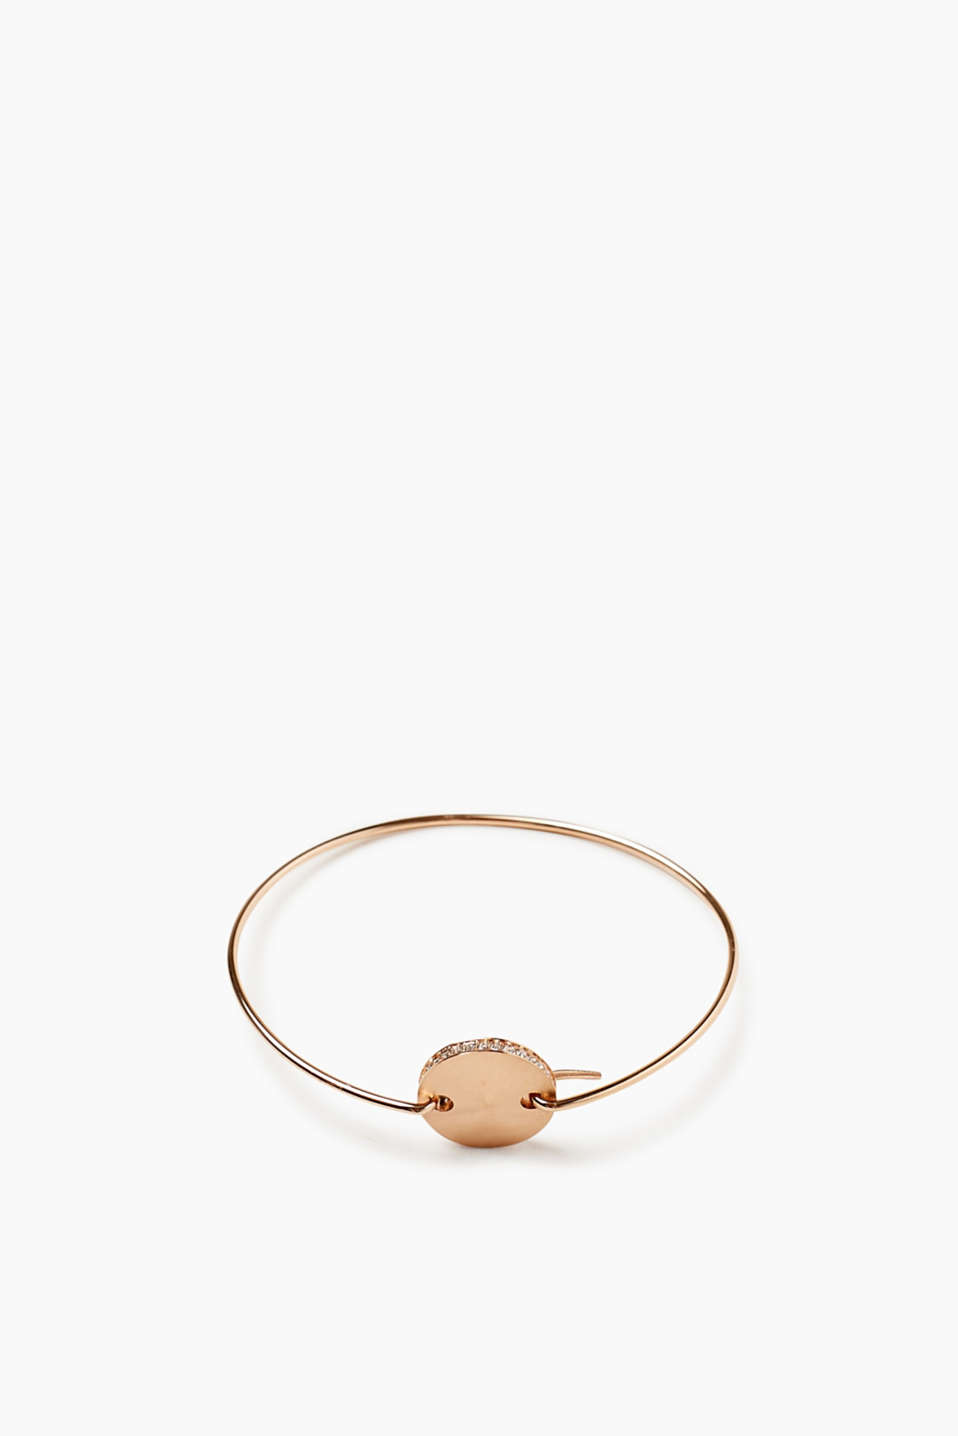 Esprit - Minimalist bangle in rose gold